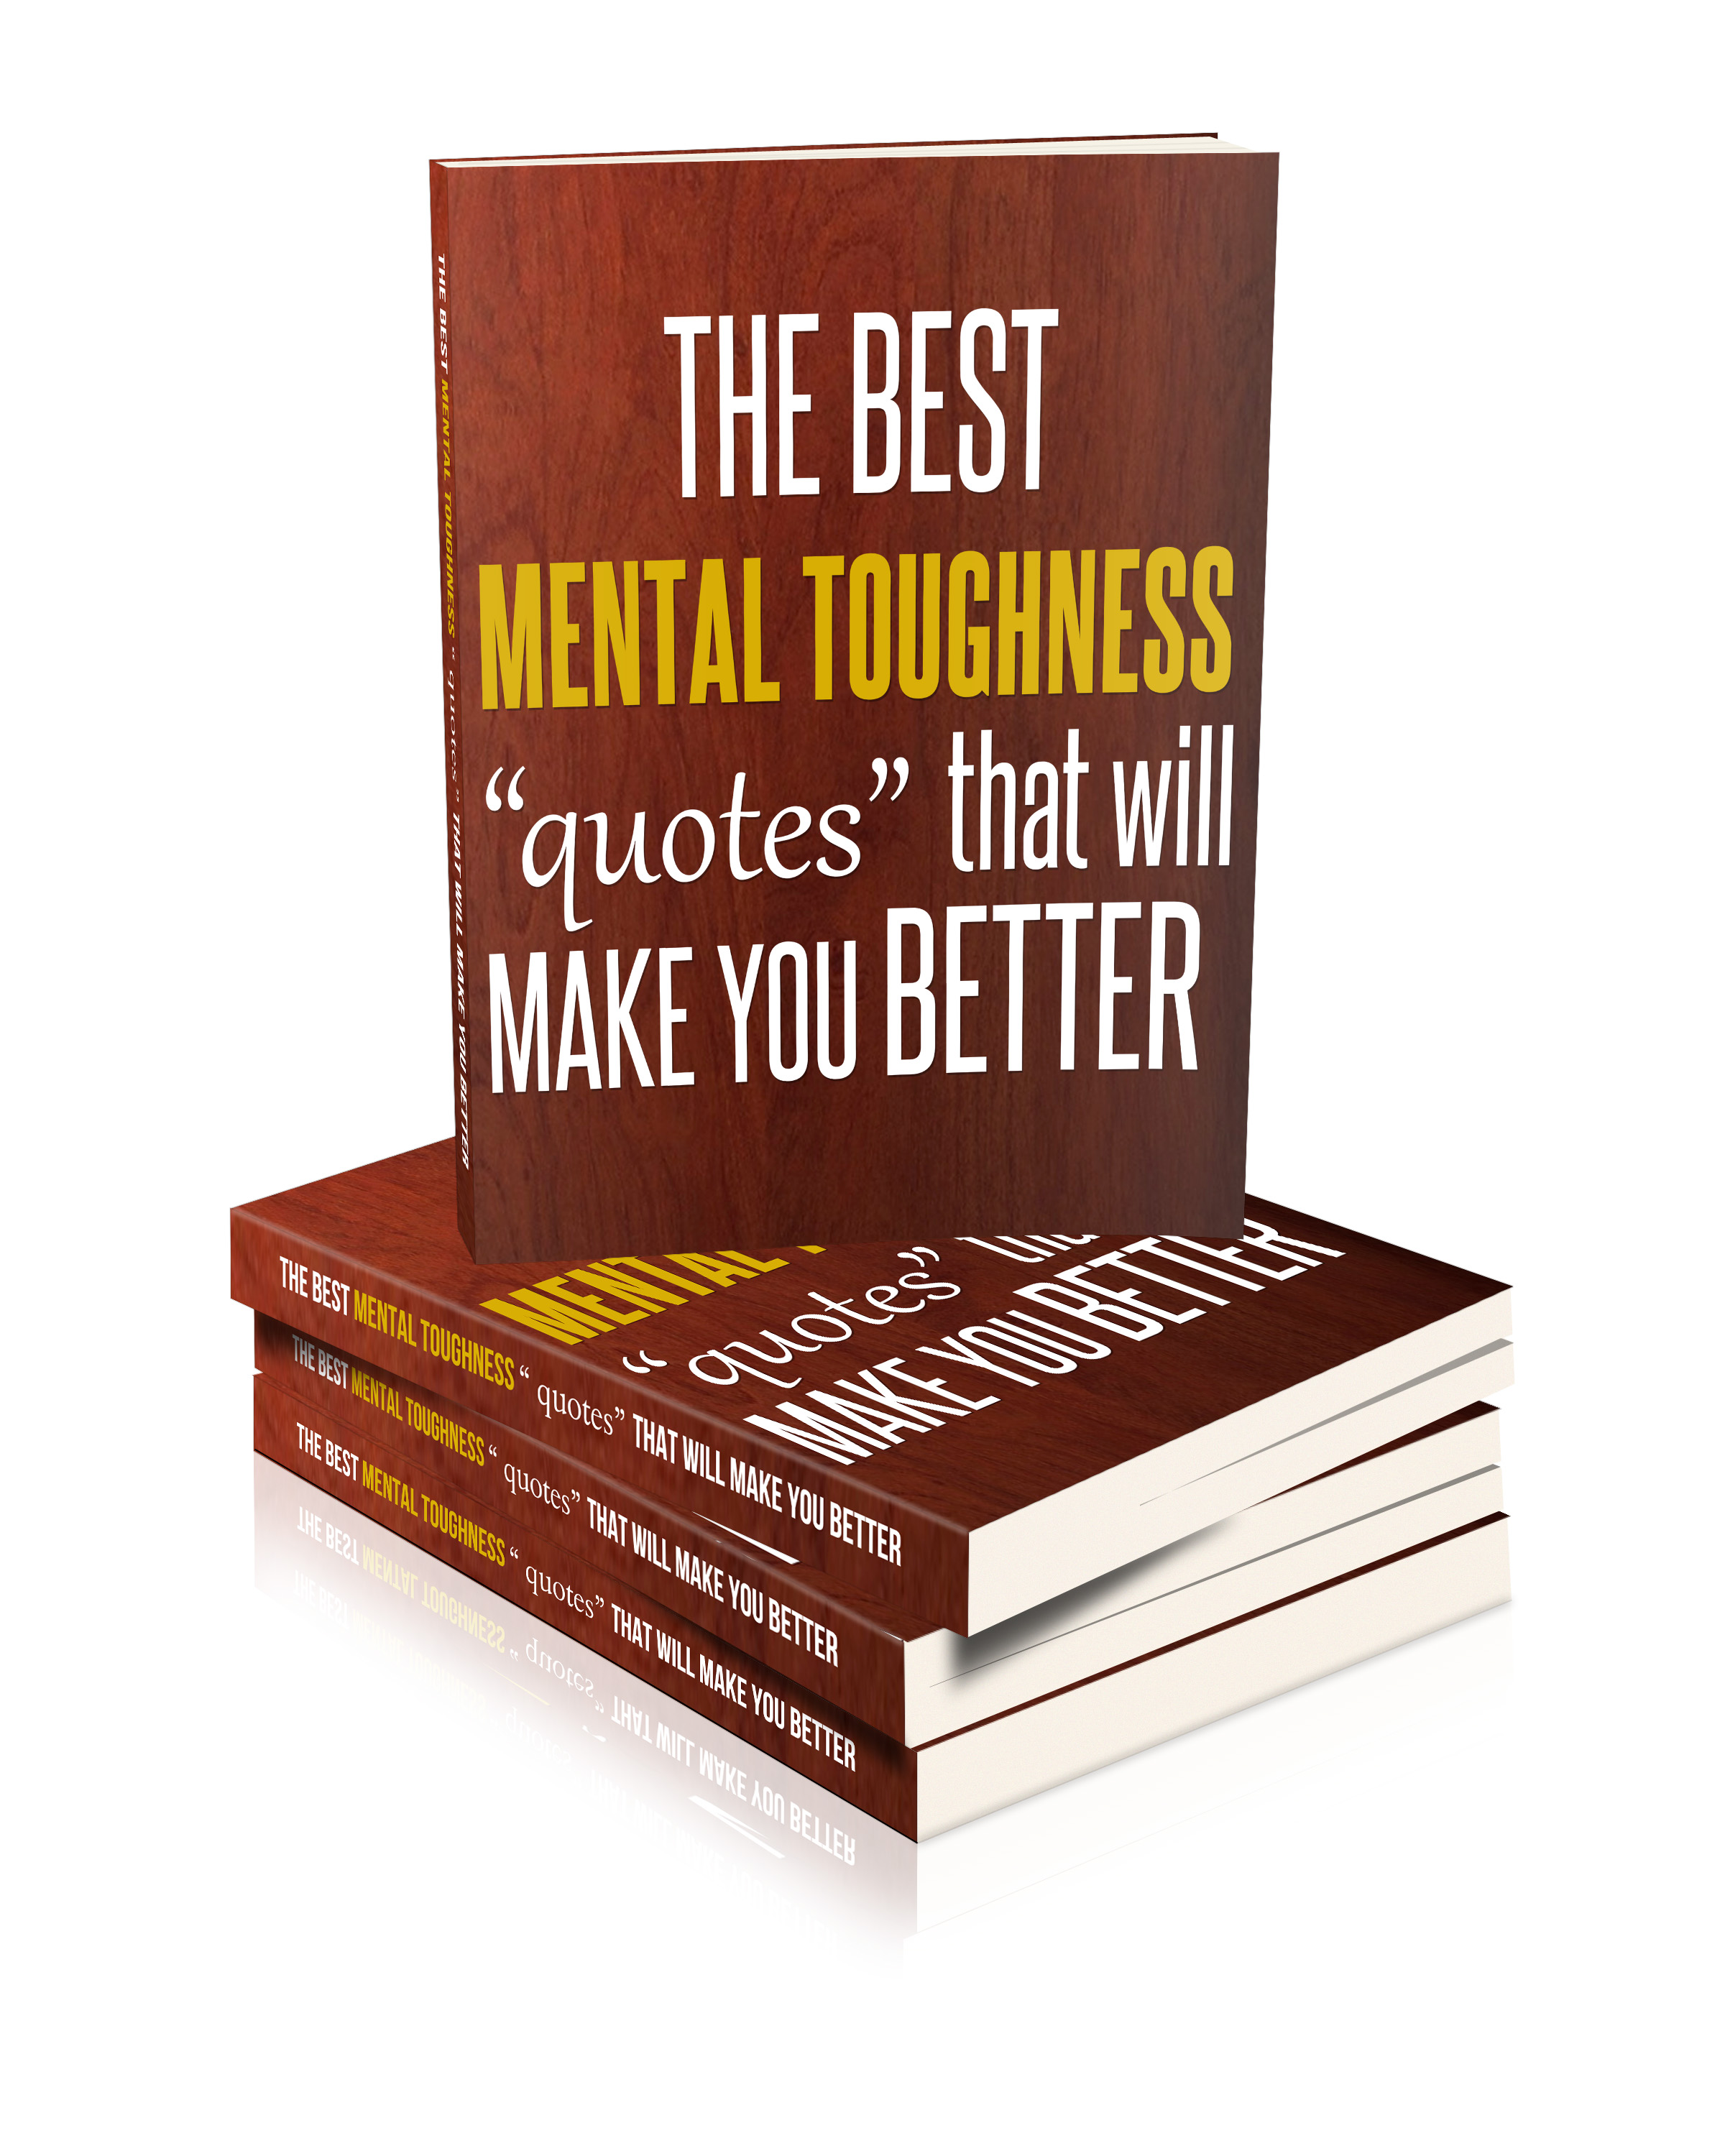 The Best Mental Toughness Quotes